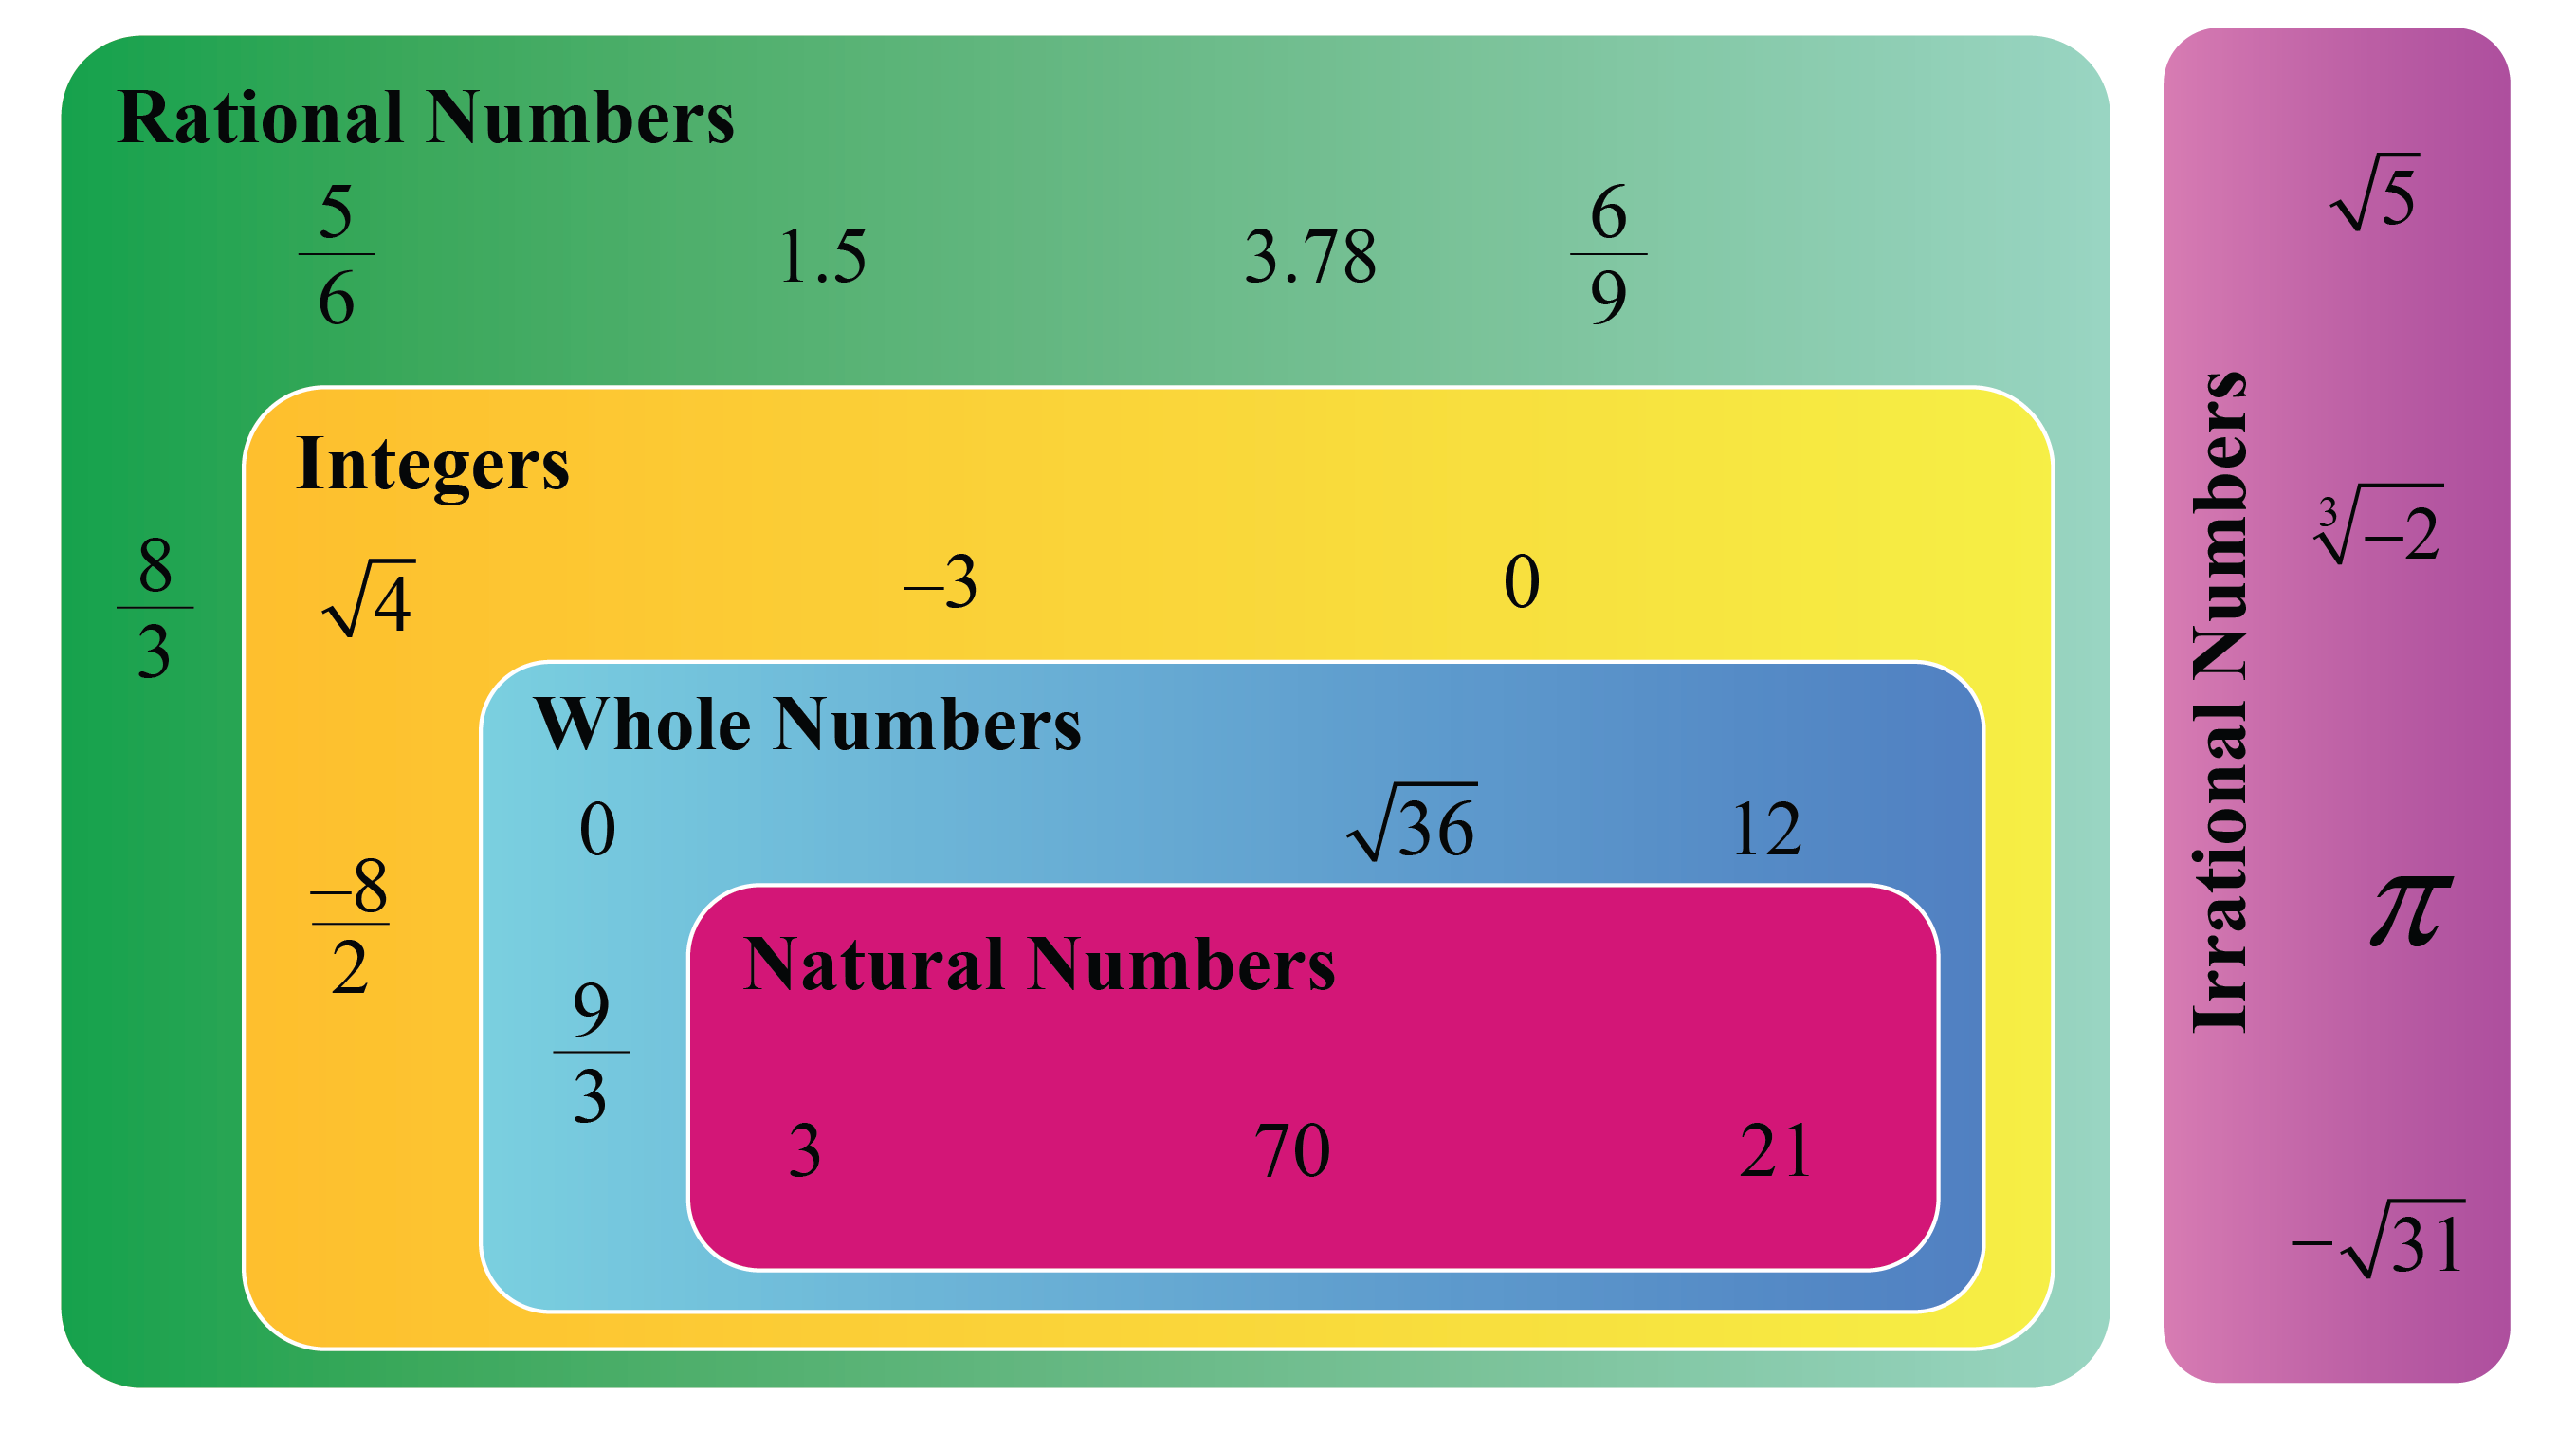 Examples of rational and irrational numbers are shown. Rational numbers include natural numbers, whole numbers and integers.